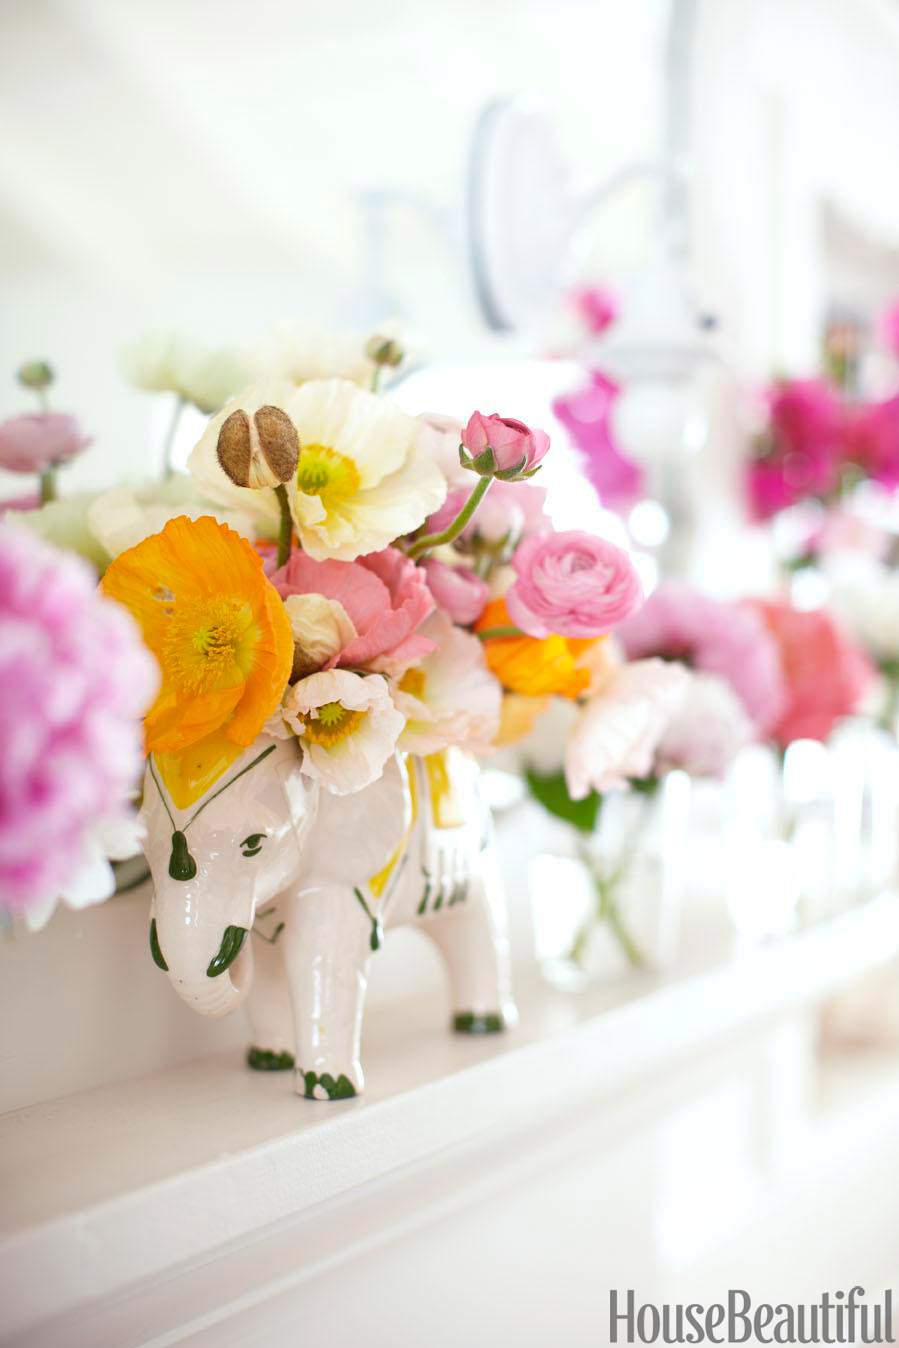 How To Make A Flower Arrangement 55 easy flower arrangement decoration ideas & pictures - how to